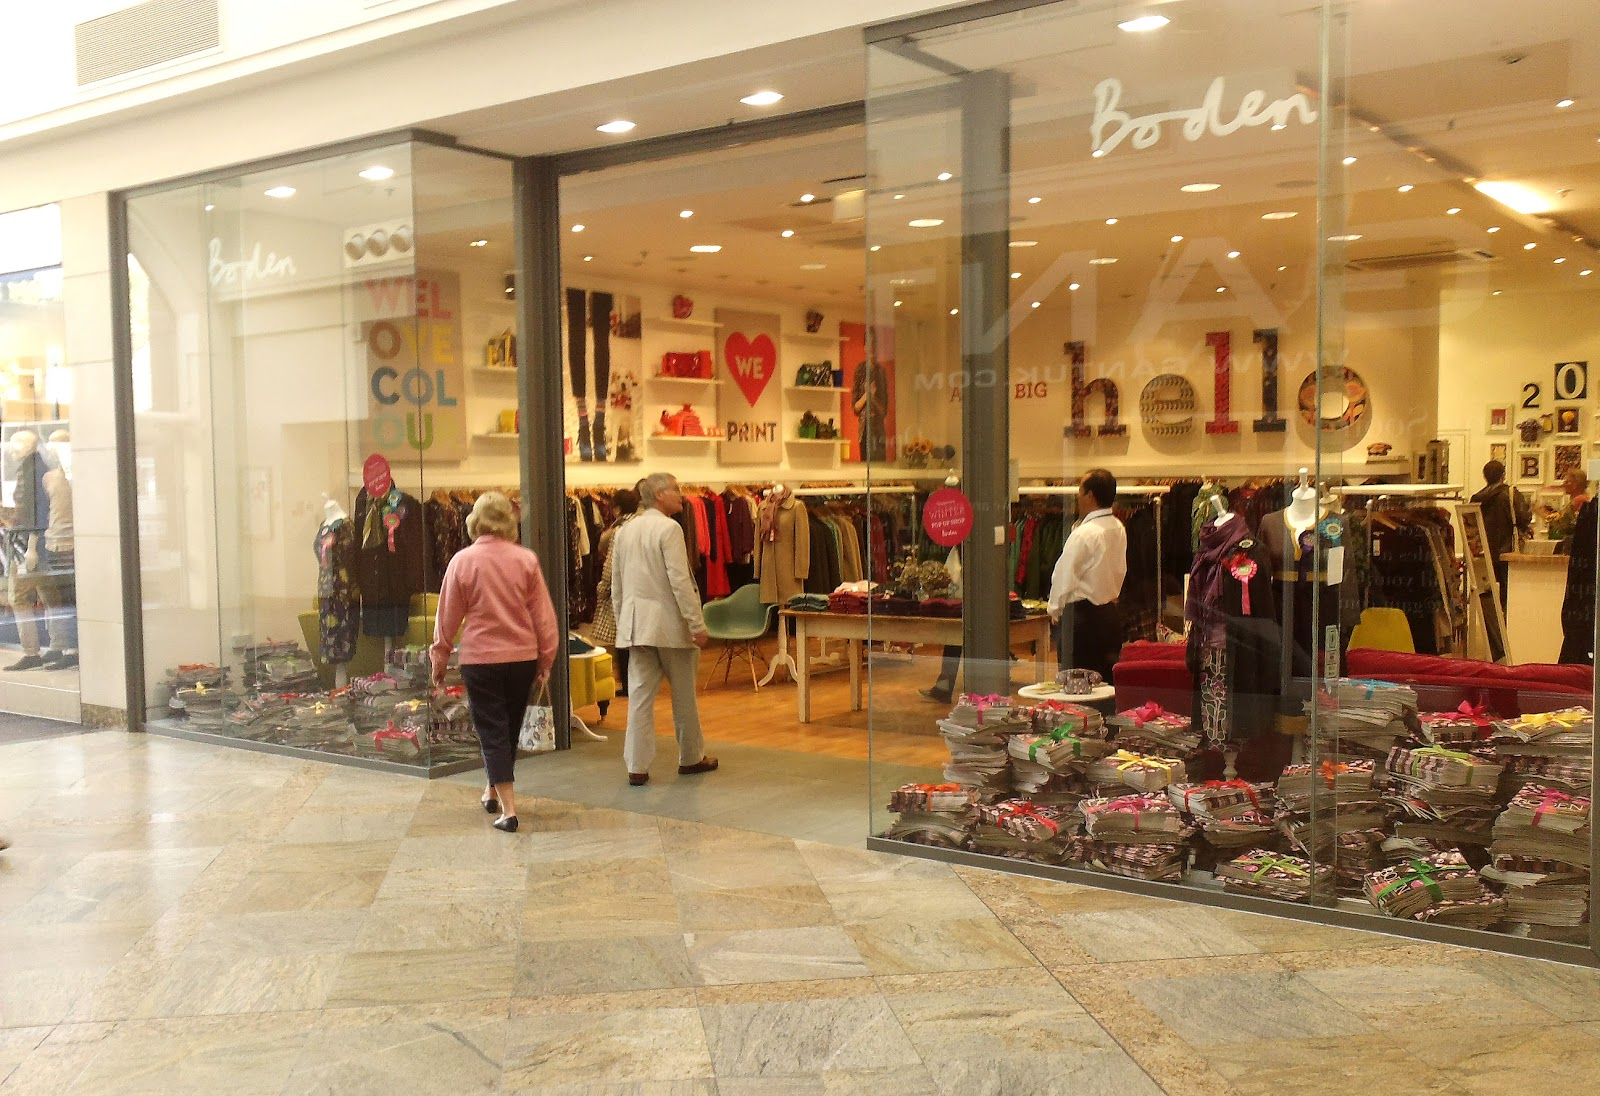 Rpm pop up boden pop up shop oracle shopping centre for Shop mini boden